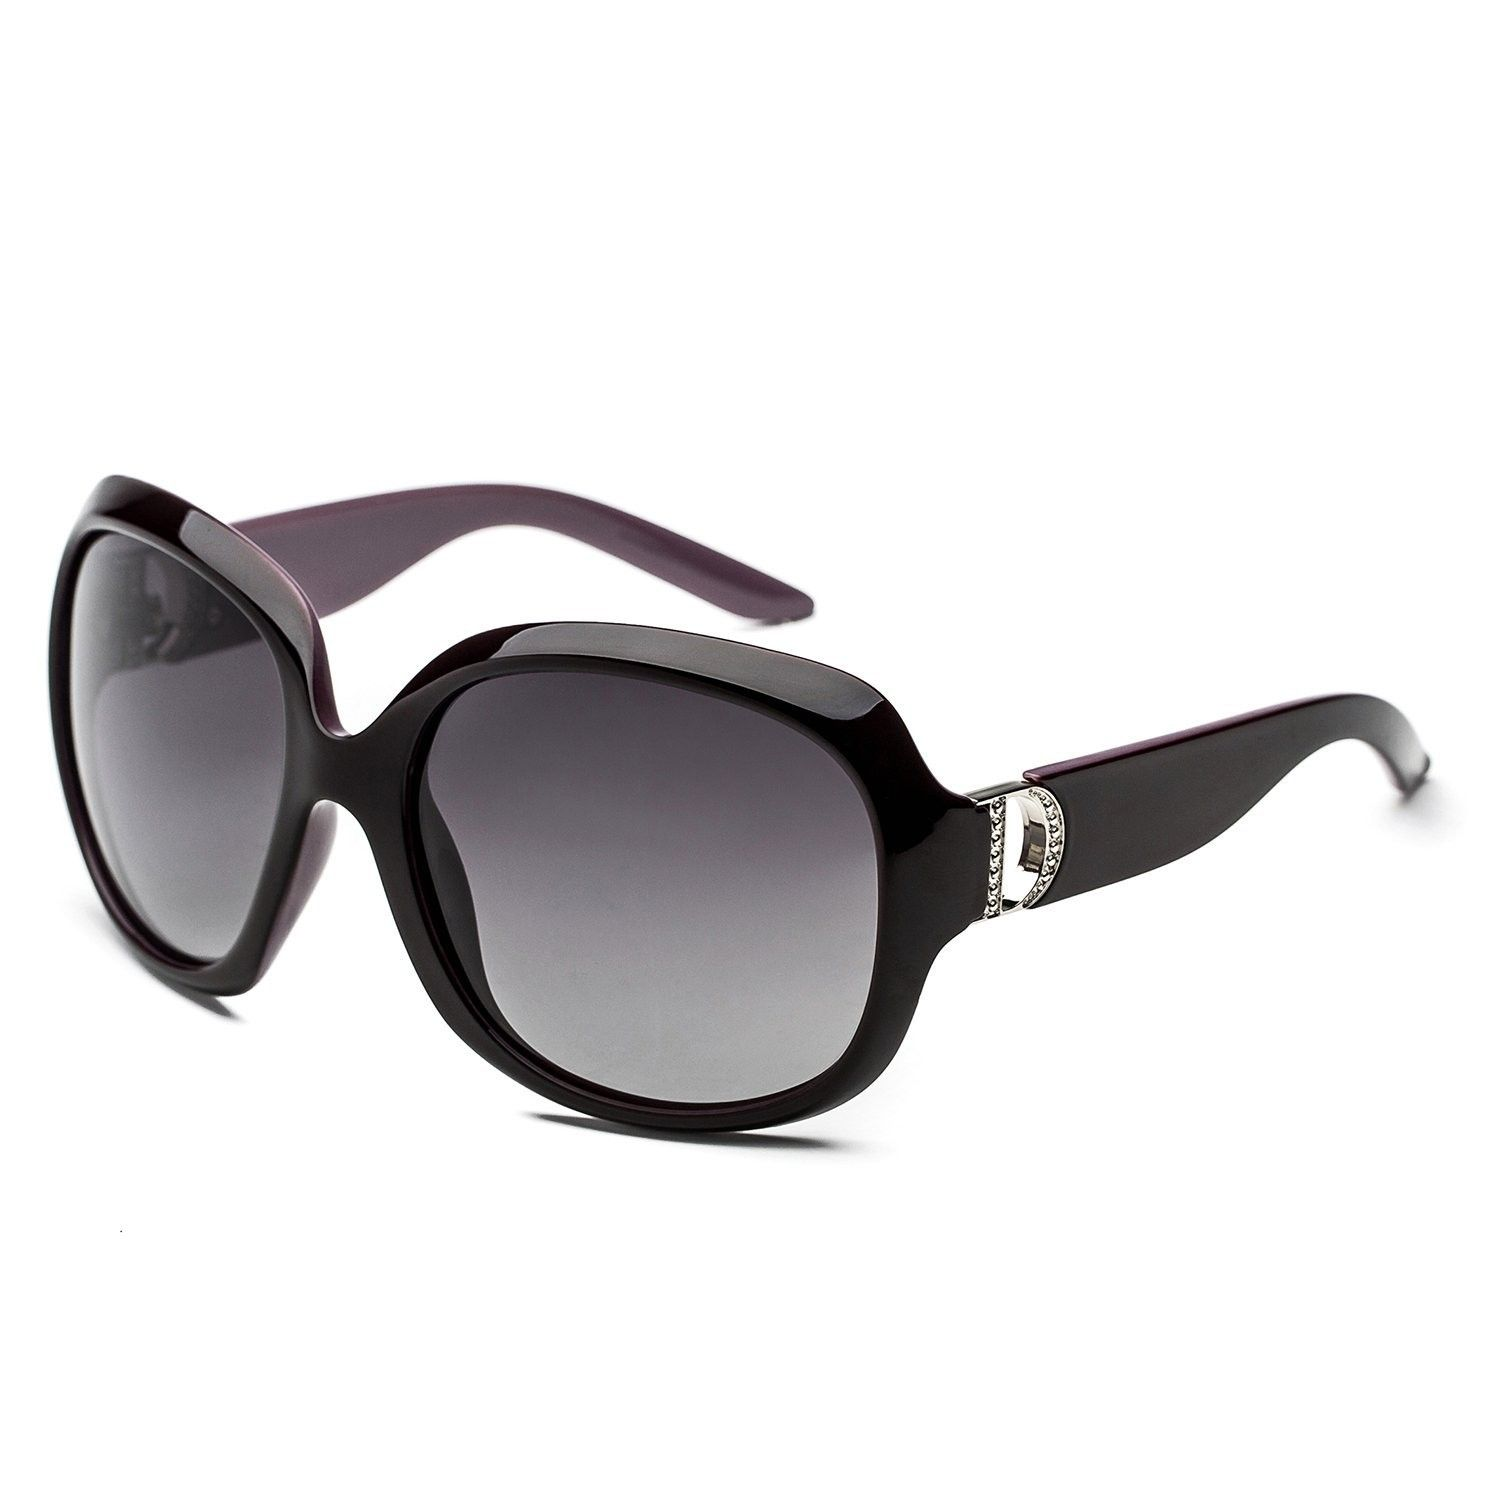 5c7f4142b0f Women s shades classic oversized polarized sunglasses 100% UV protection -  Black Purple Frame - C512O3358CE - Women s Sunglasses